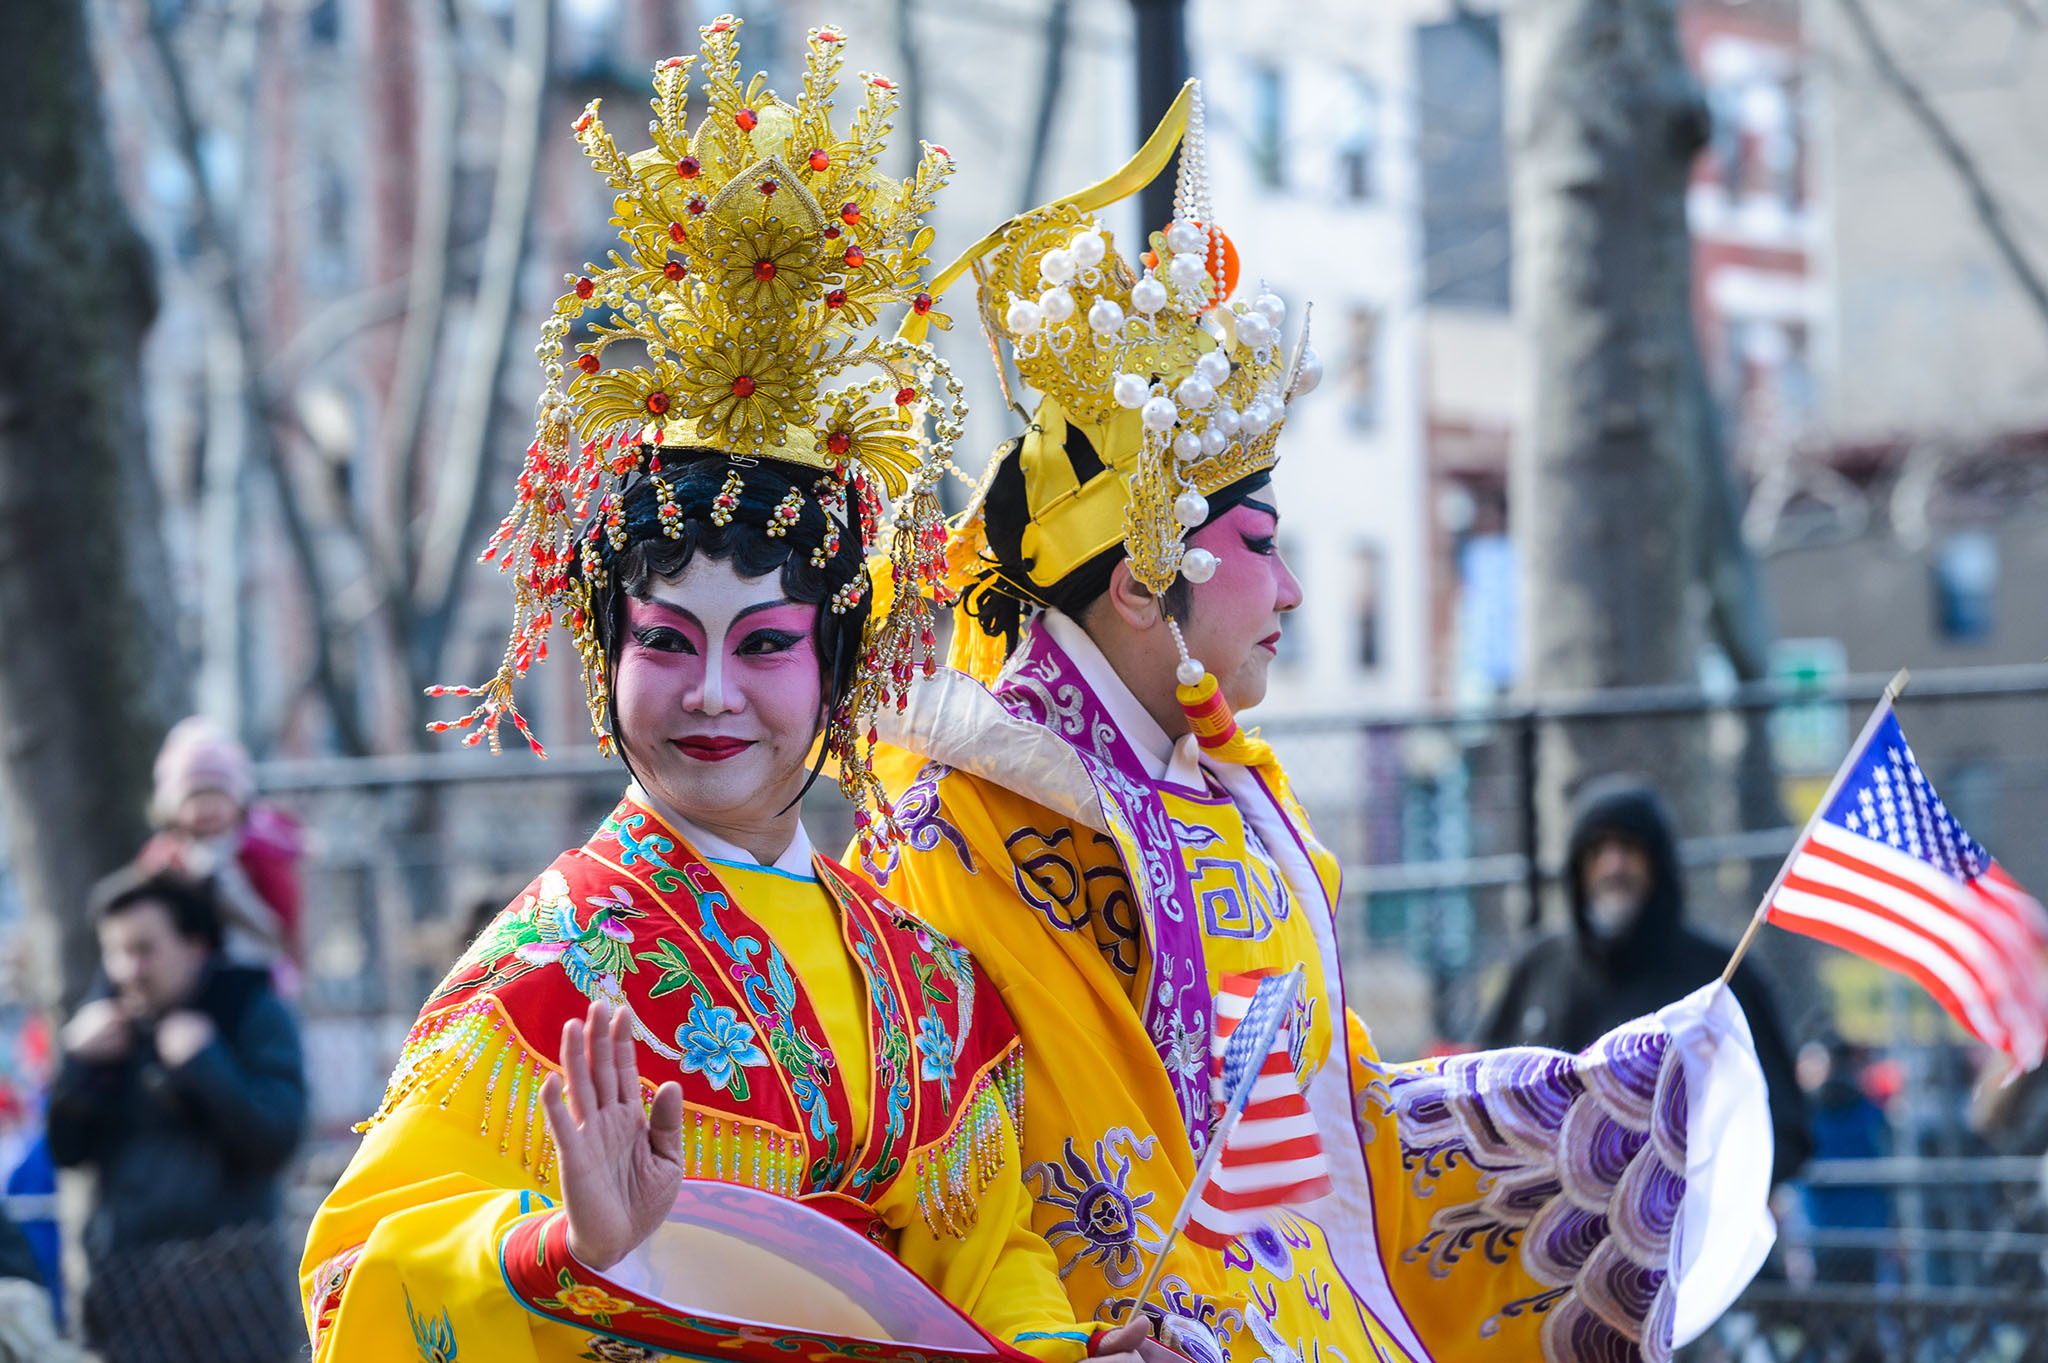 Nyc Chinese New Year 2020 Best NYC Events In February 2020 With Things To Do In Winter